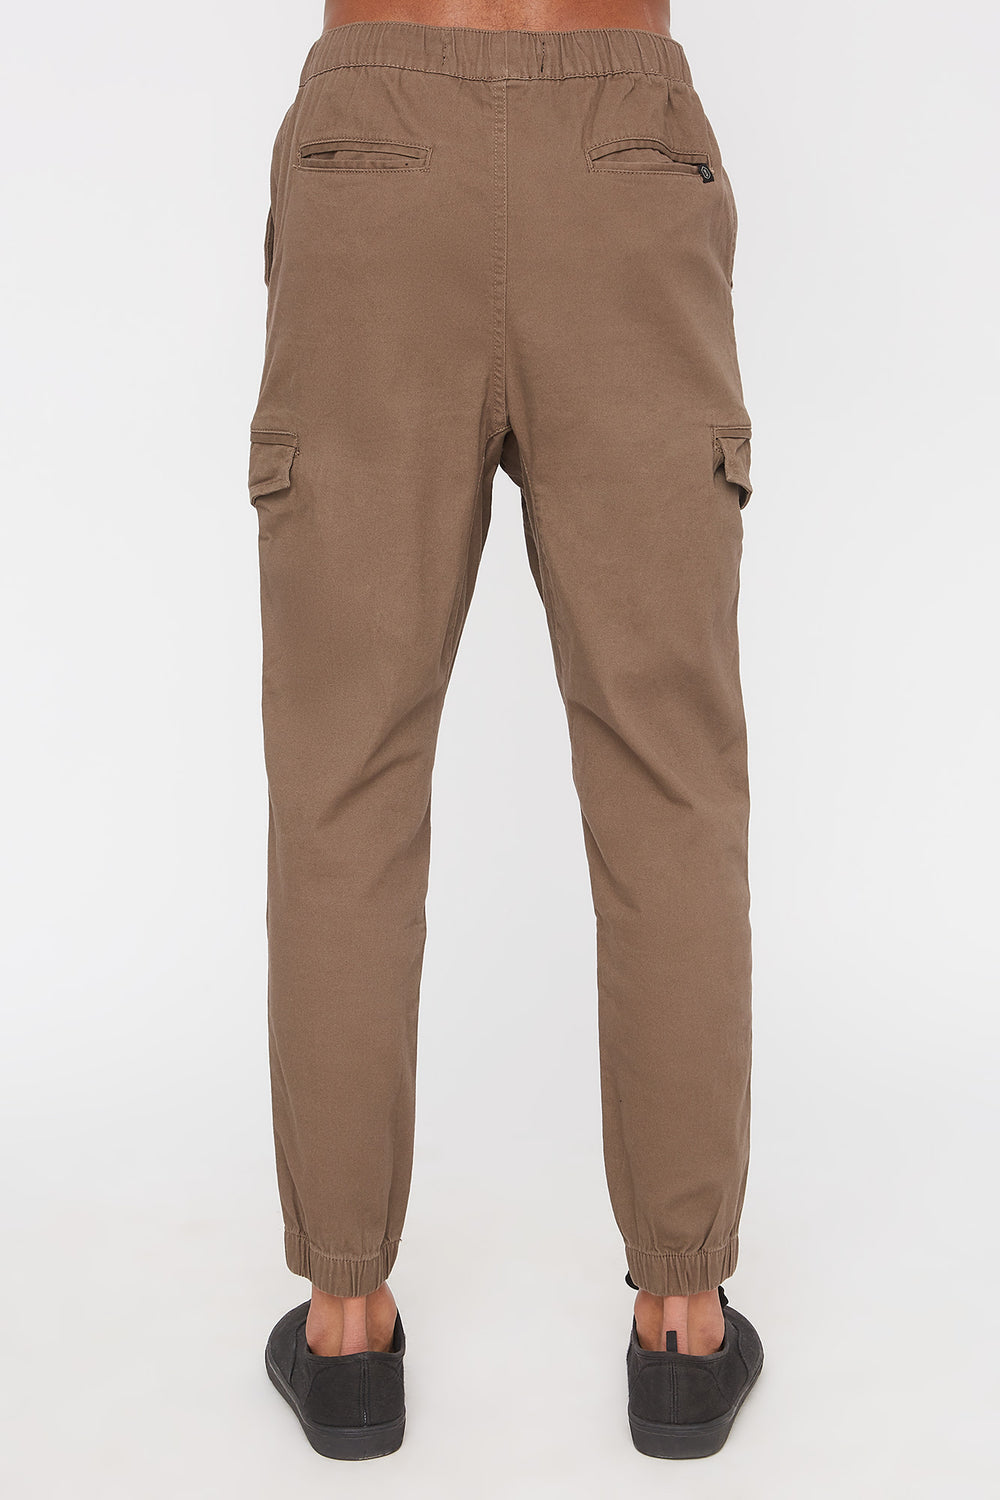 West49 Mens Cargo Jogger Brown